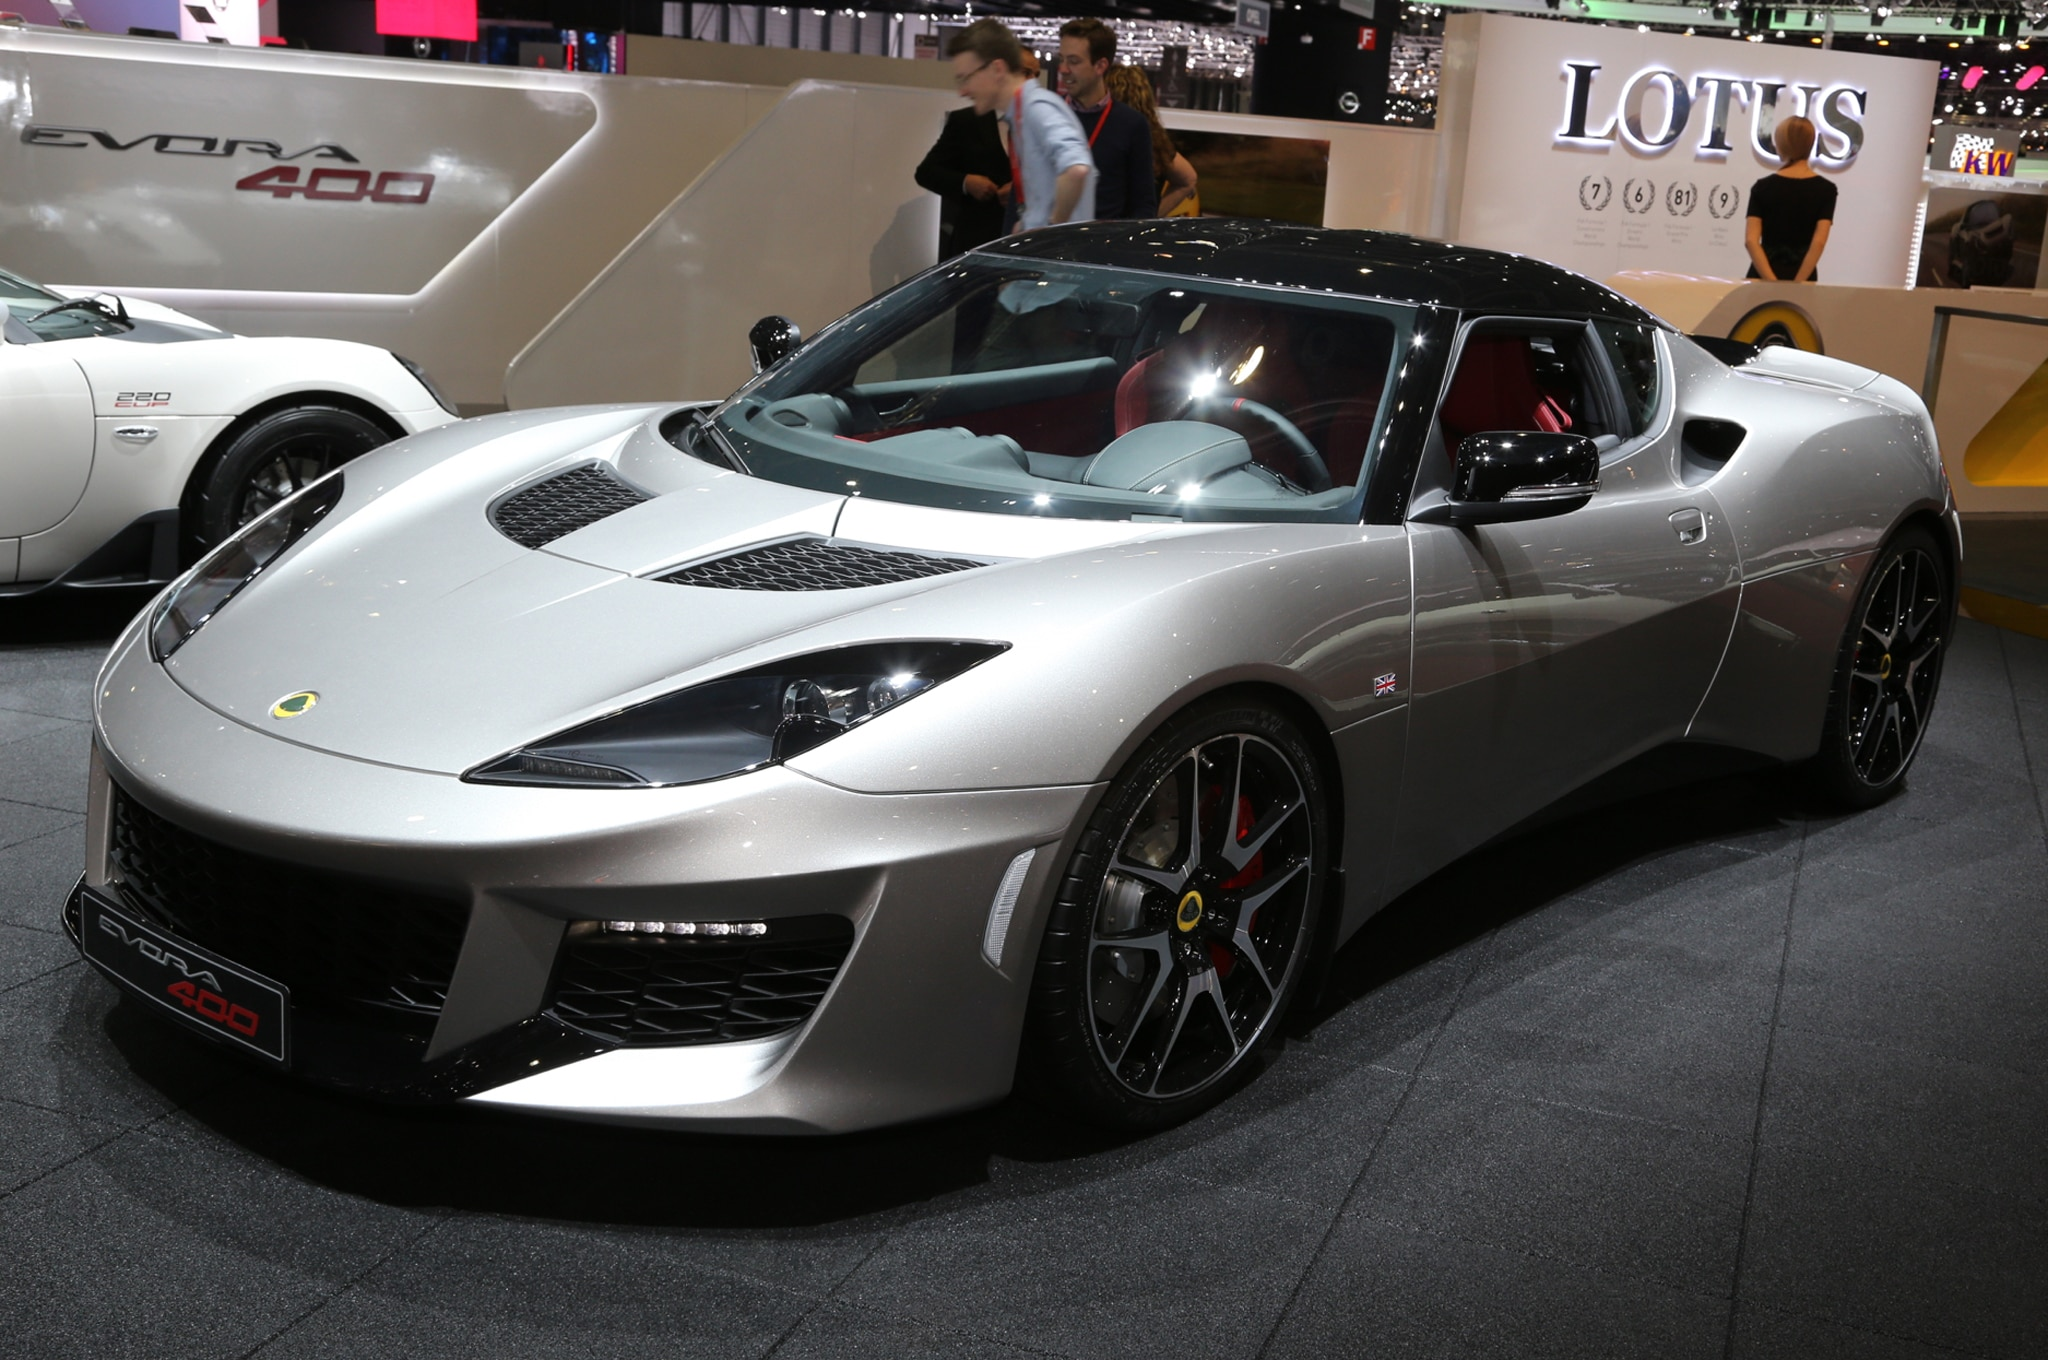 Lotus Evora 400 Roadster To Launch In Fall 2016